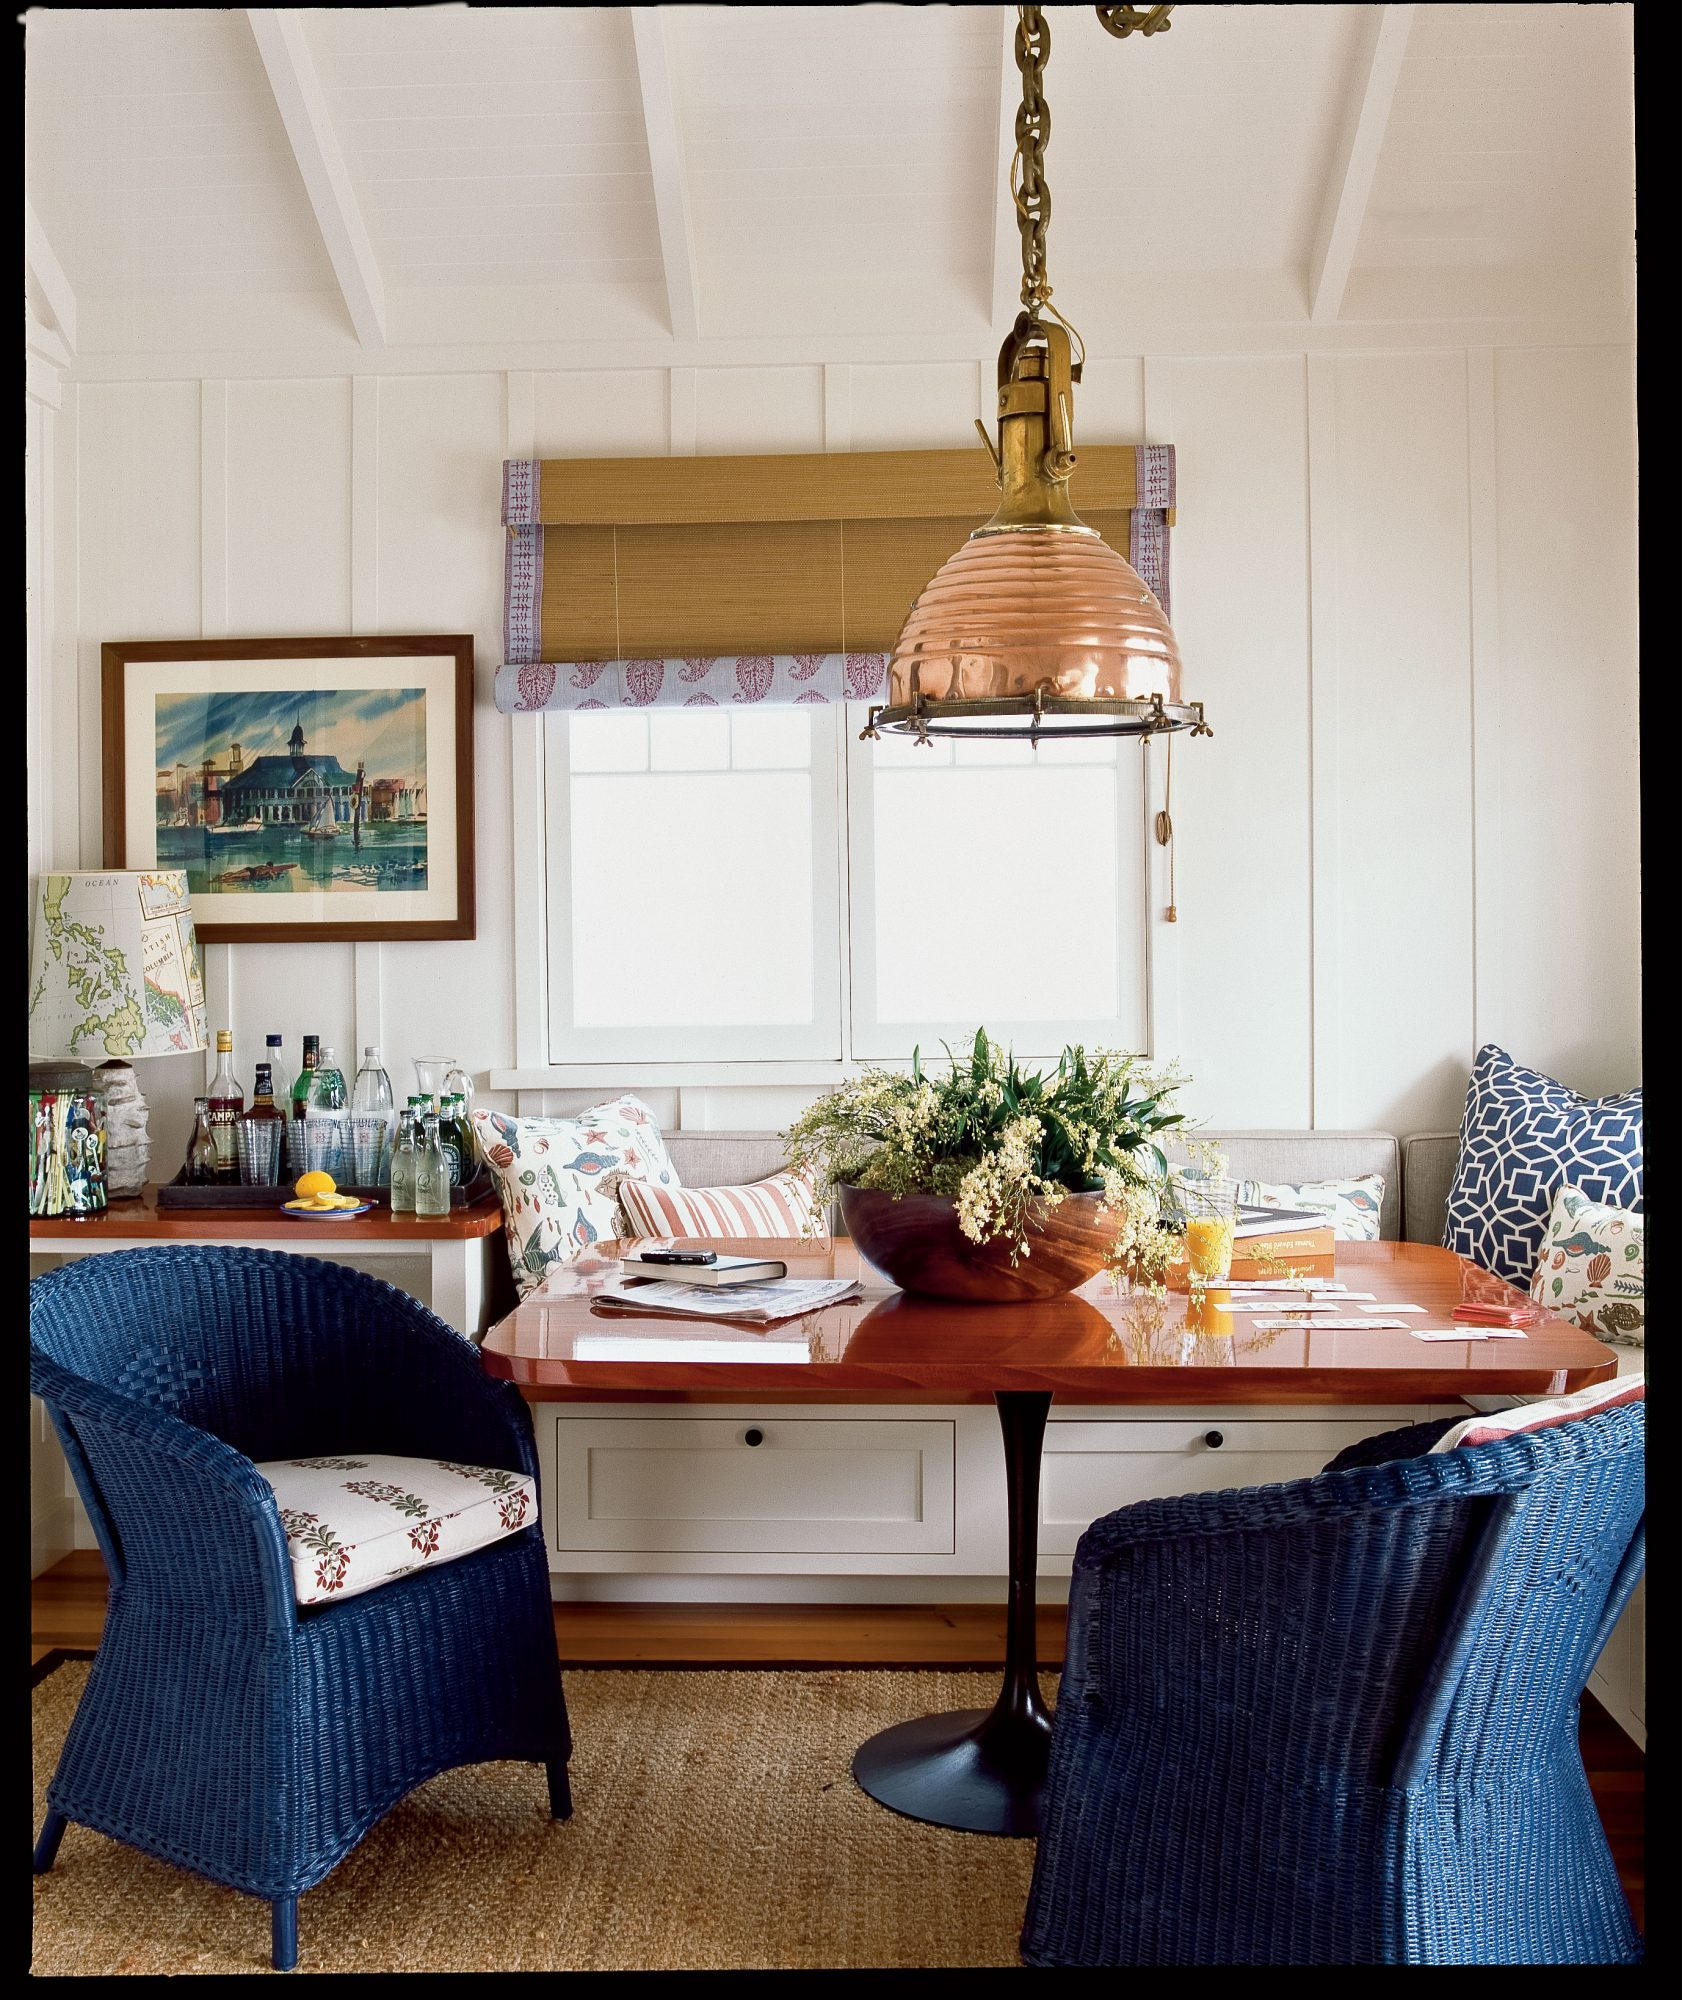 With its vintage brass fixture and banquette seating, the dining area exudes nautical style. A perfectly stylish spot for family dinners and homework.